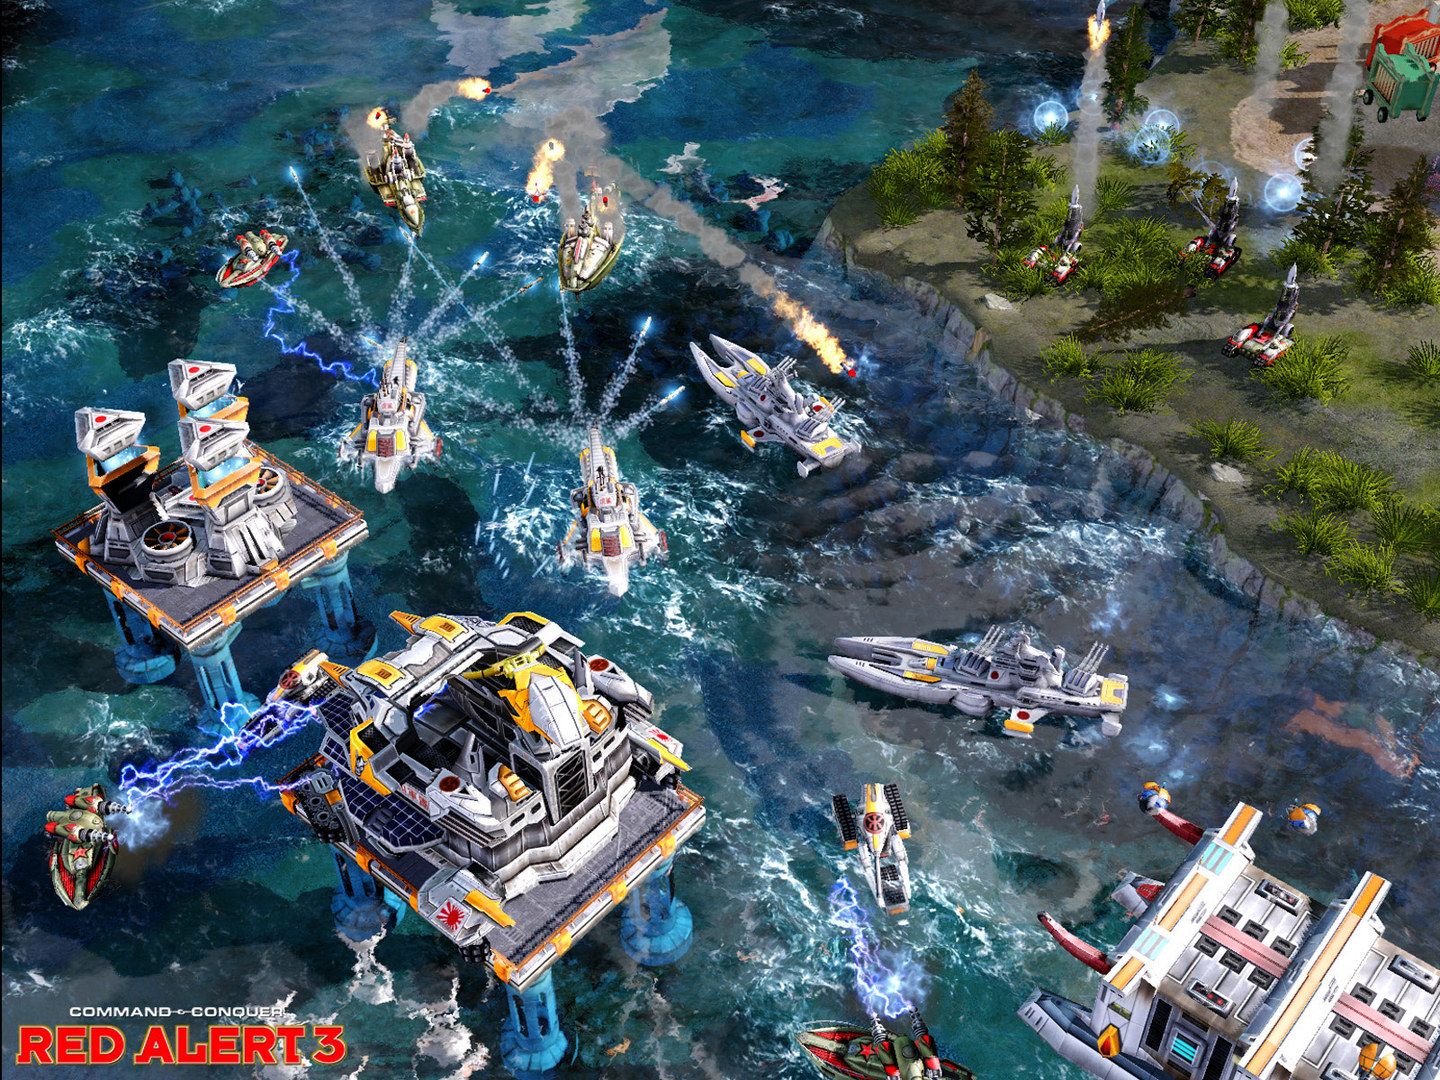 Download free software command & conquer red alert 2 1. 003 patch.